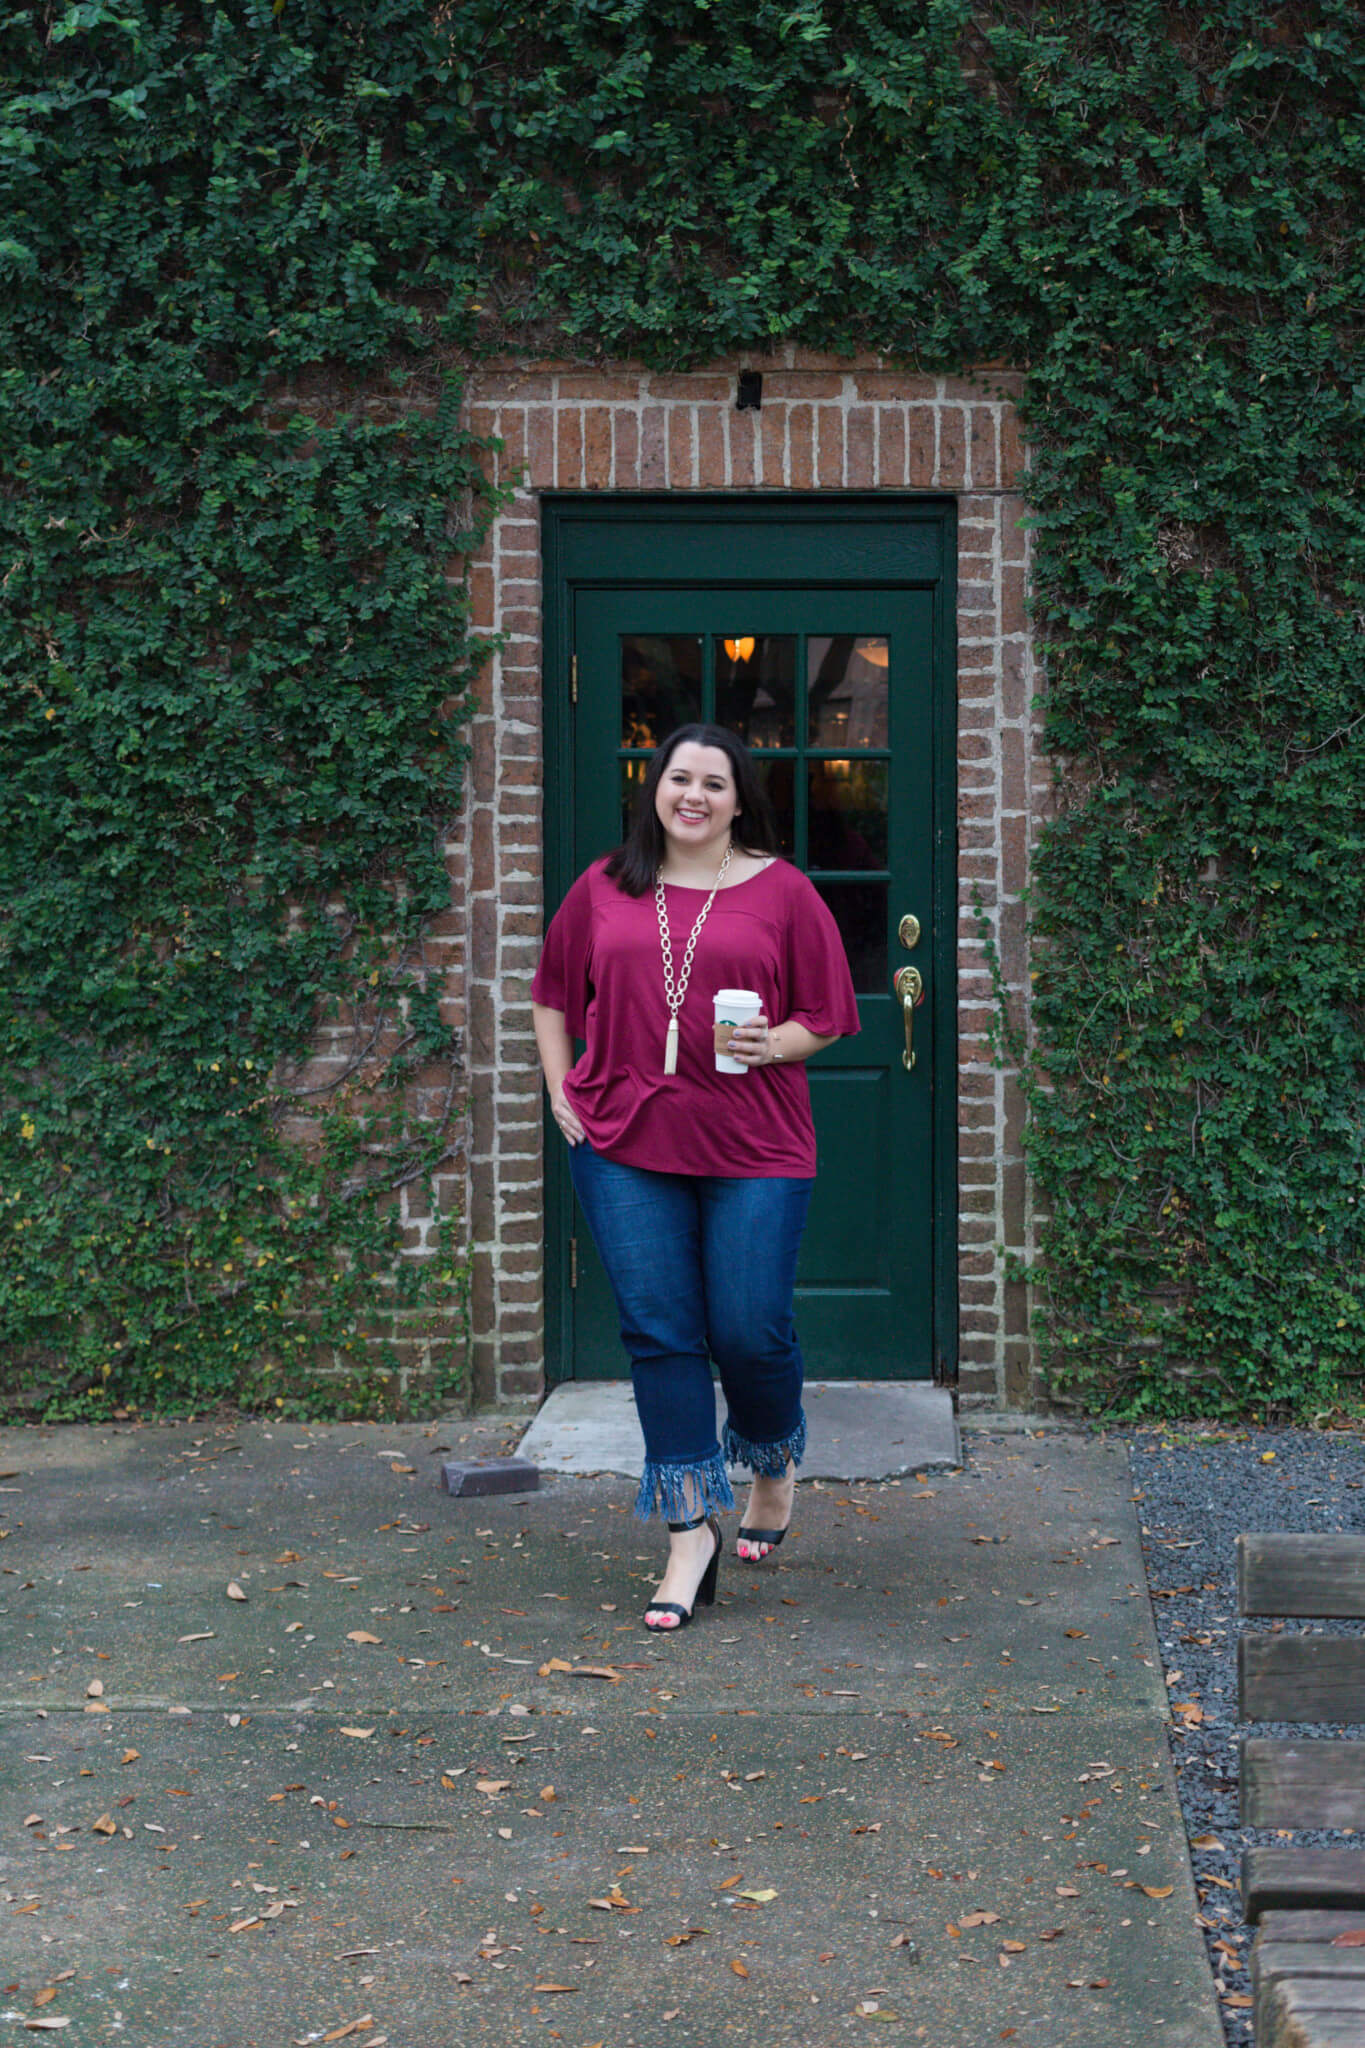 Fringe is one of my favorite trends of this season and I am so excited to have found a fabulous pair from Eloquii to pair with my burgundy Old Navy top and Kendra Scott chain necklace for my recent blog post on Something Gold, Something Blue, a curvy style blog by Emily Bastedo.